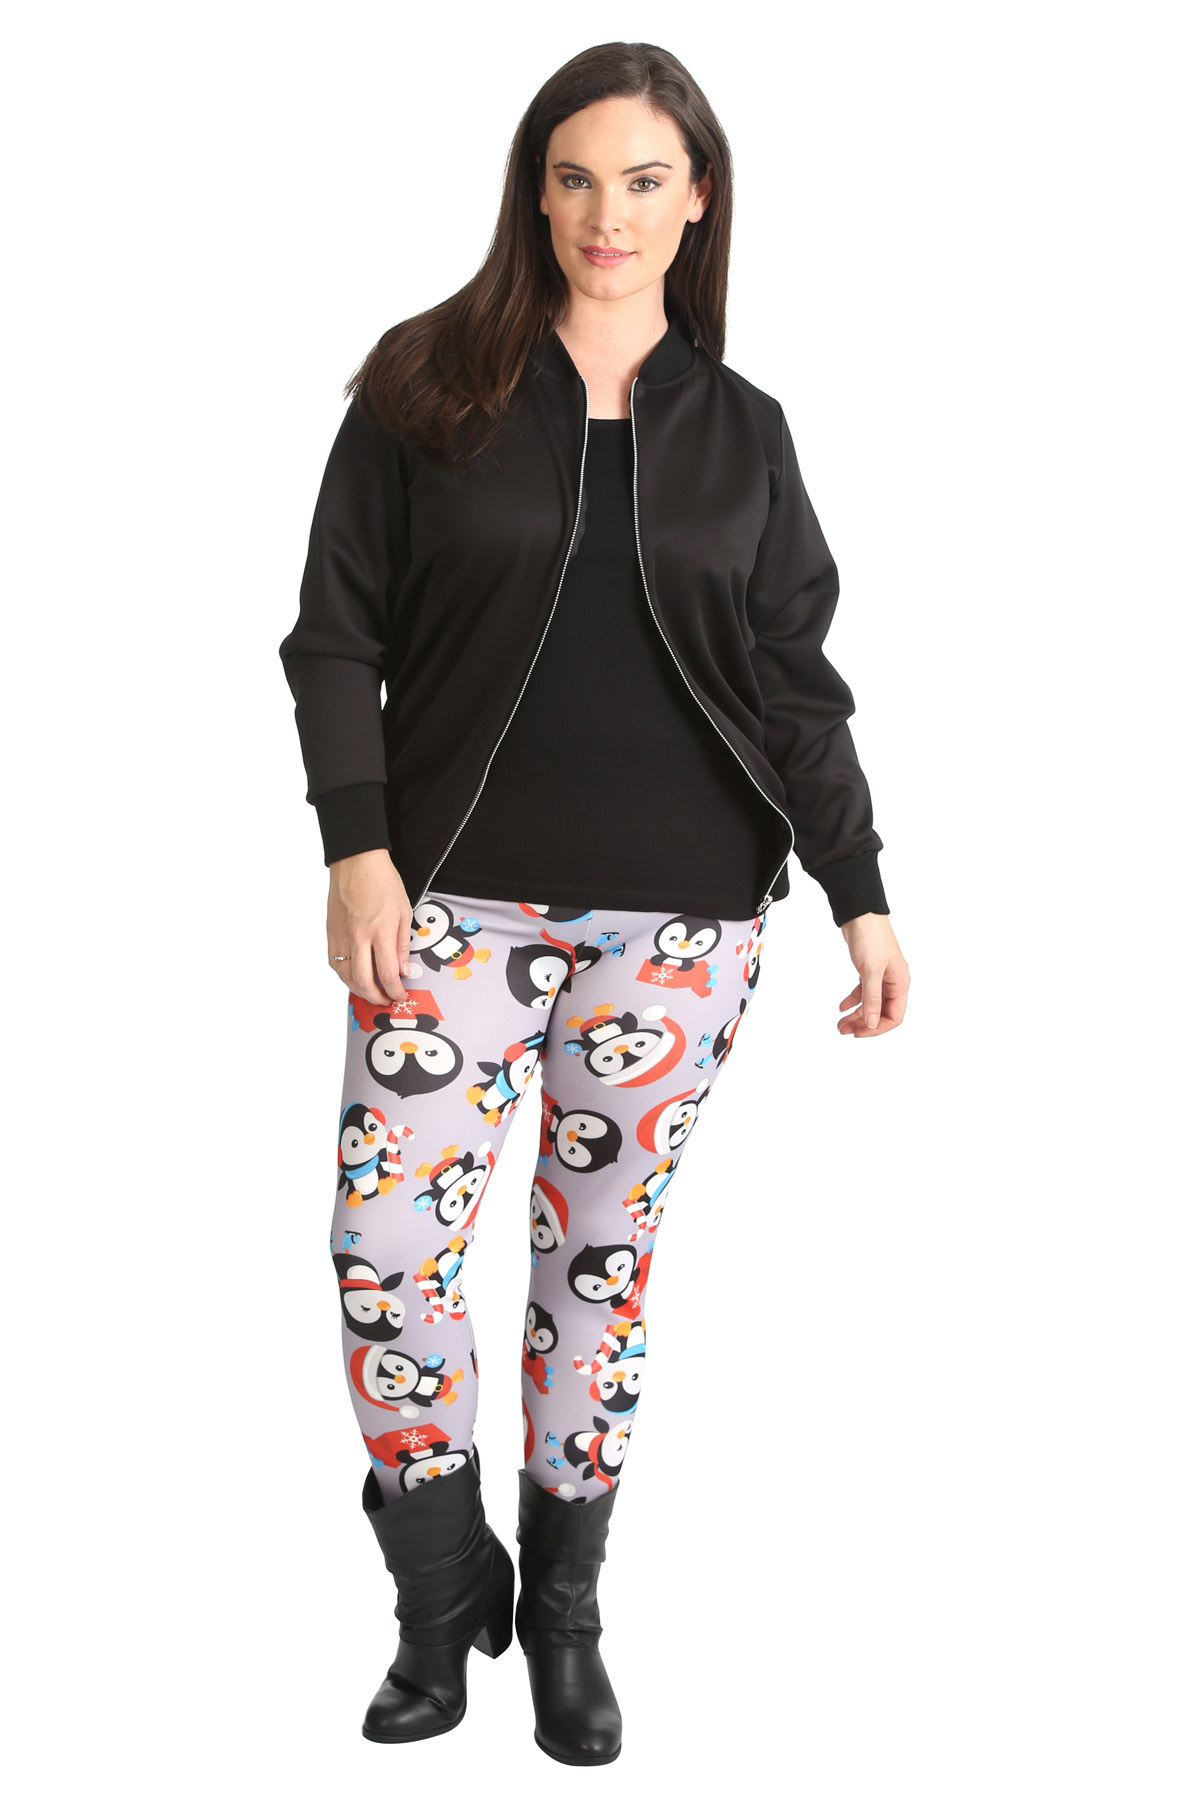 Discover women's plus size leggings in a variety of styles at zulily. Find the perfect high waist, shaper, printed, or colorful pair & save up to 70% off!